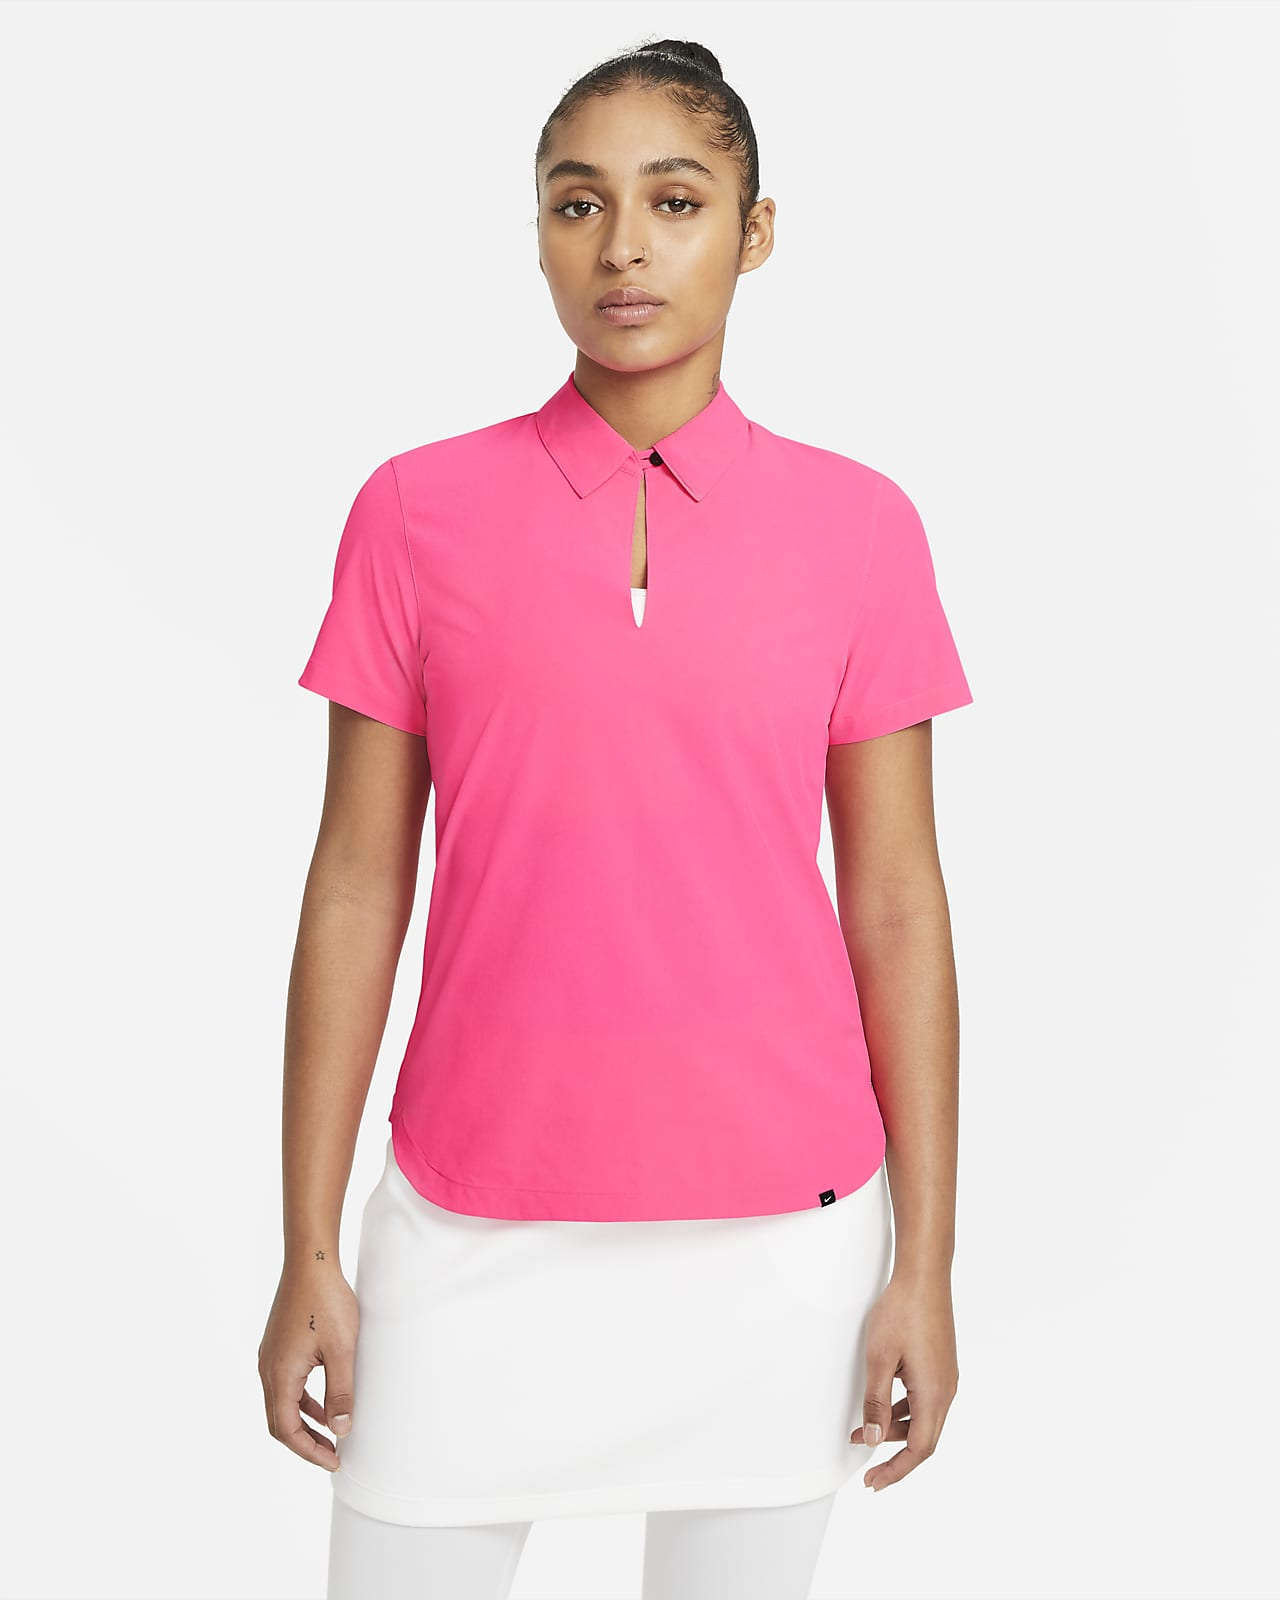 Nike Flex Ace Women's Golf Polo